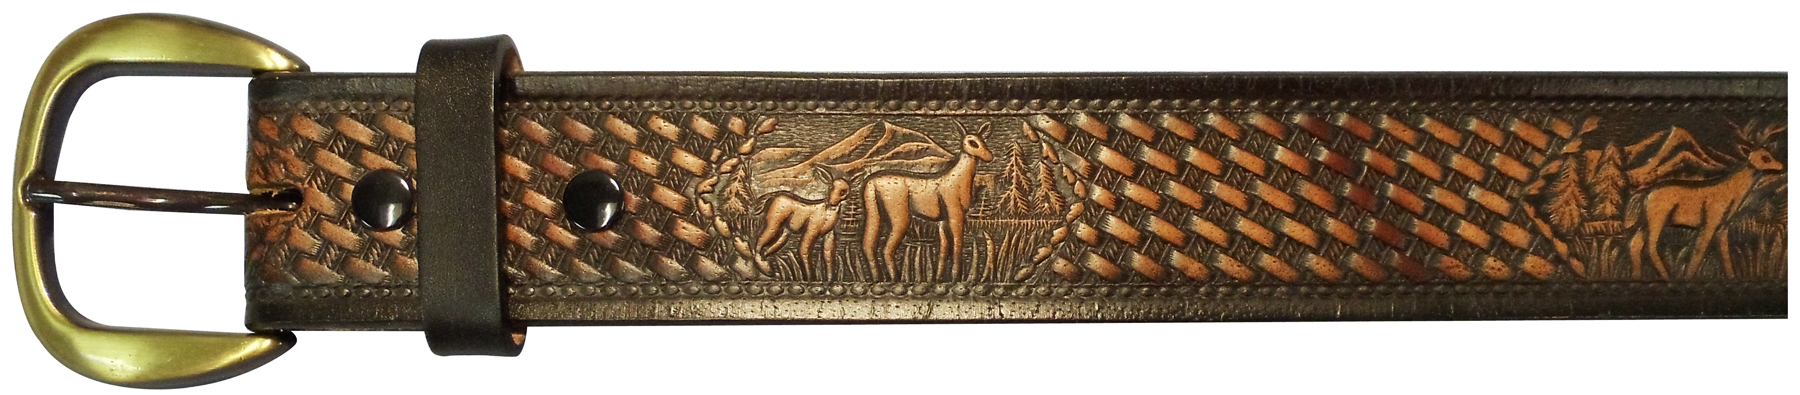 "10610160138 - 38"" Black Leather Belt With Deer Design"